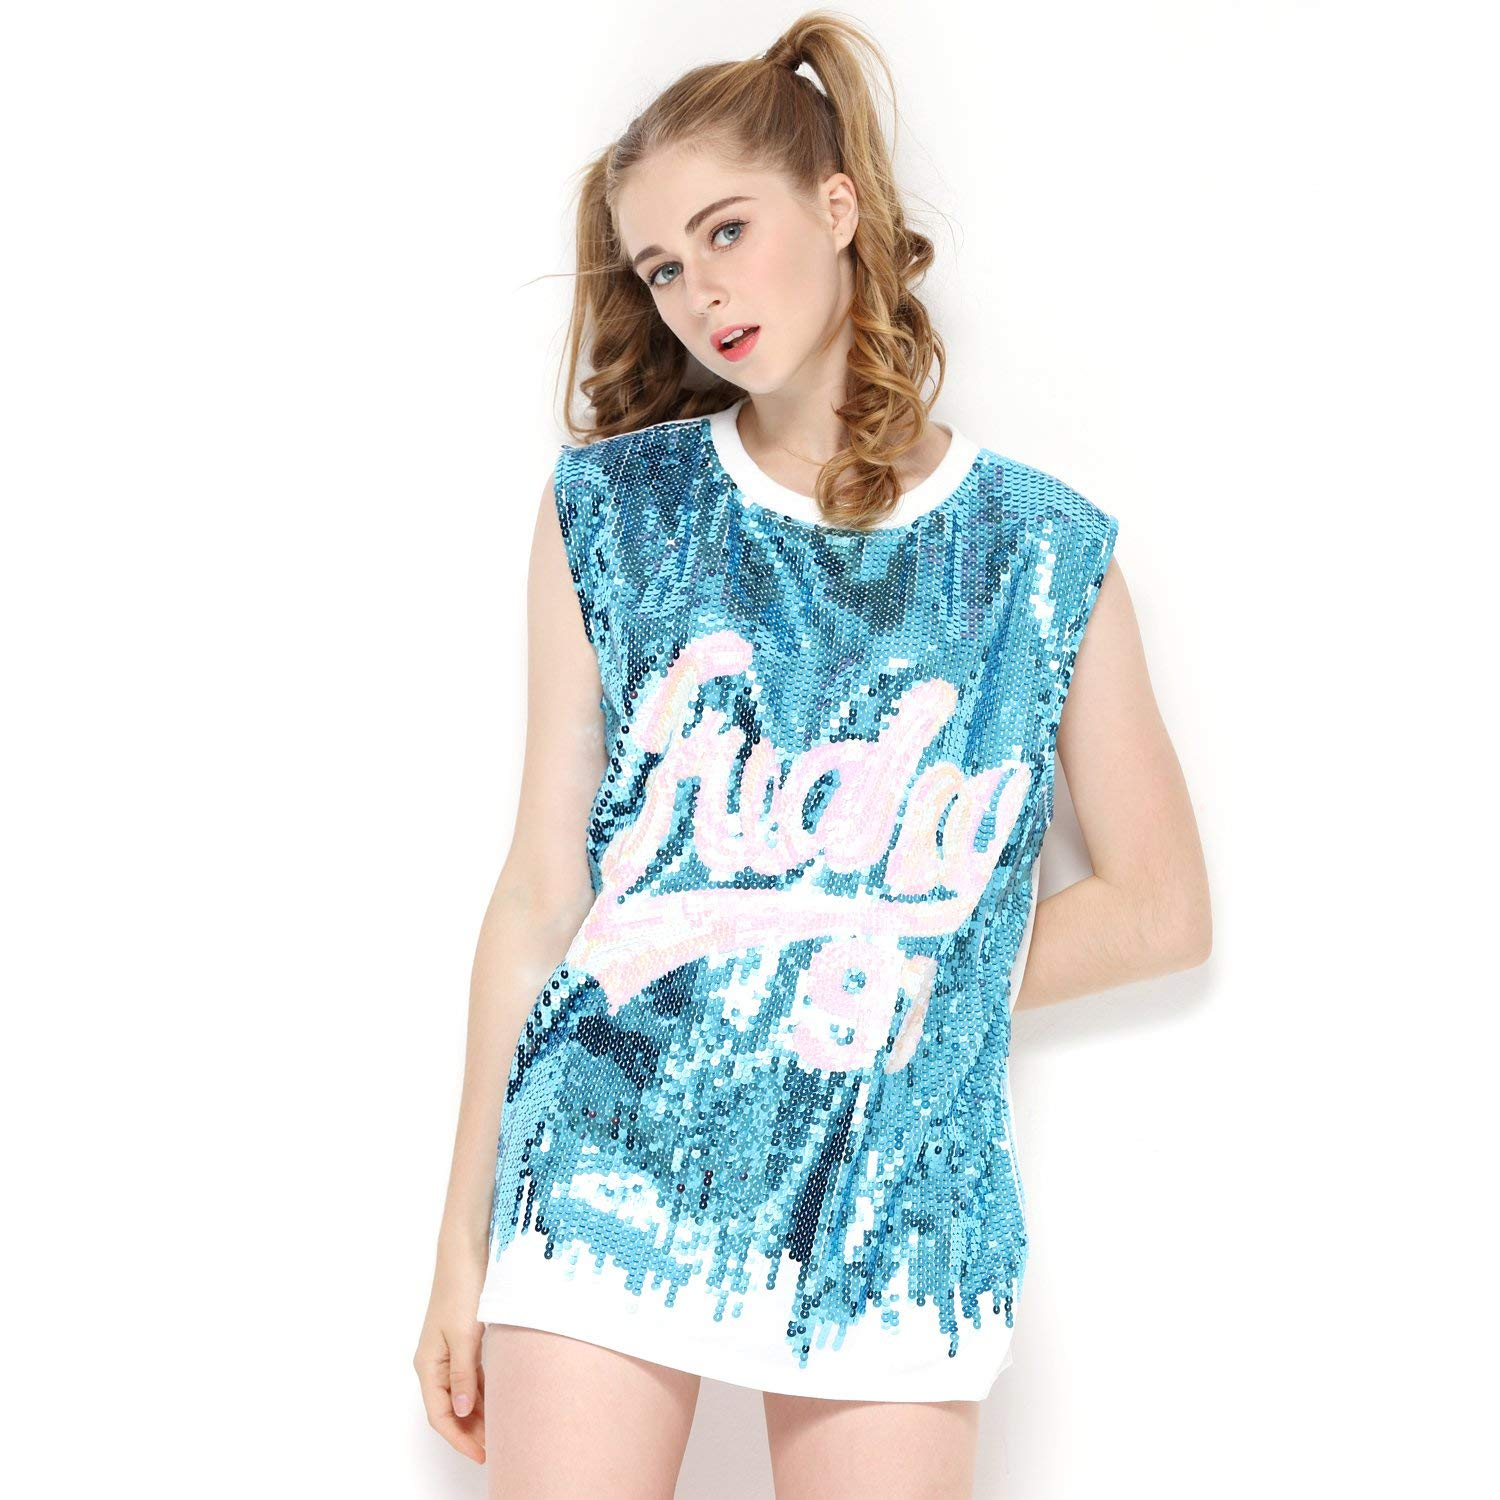 Women Sequin Tank Top Loose Fit - Letter Print Sparkle Top T Shirt for Teens